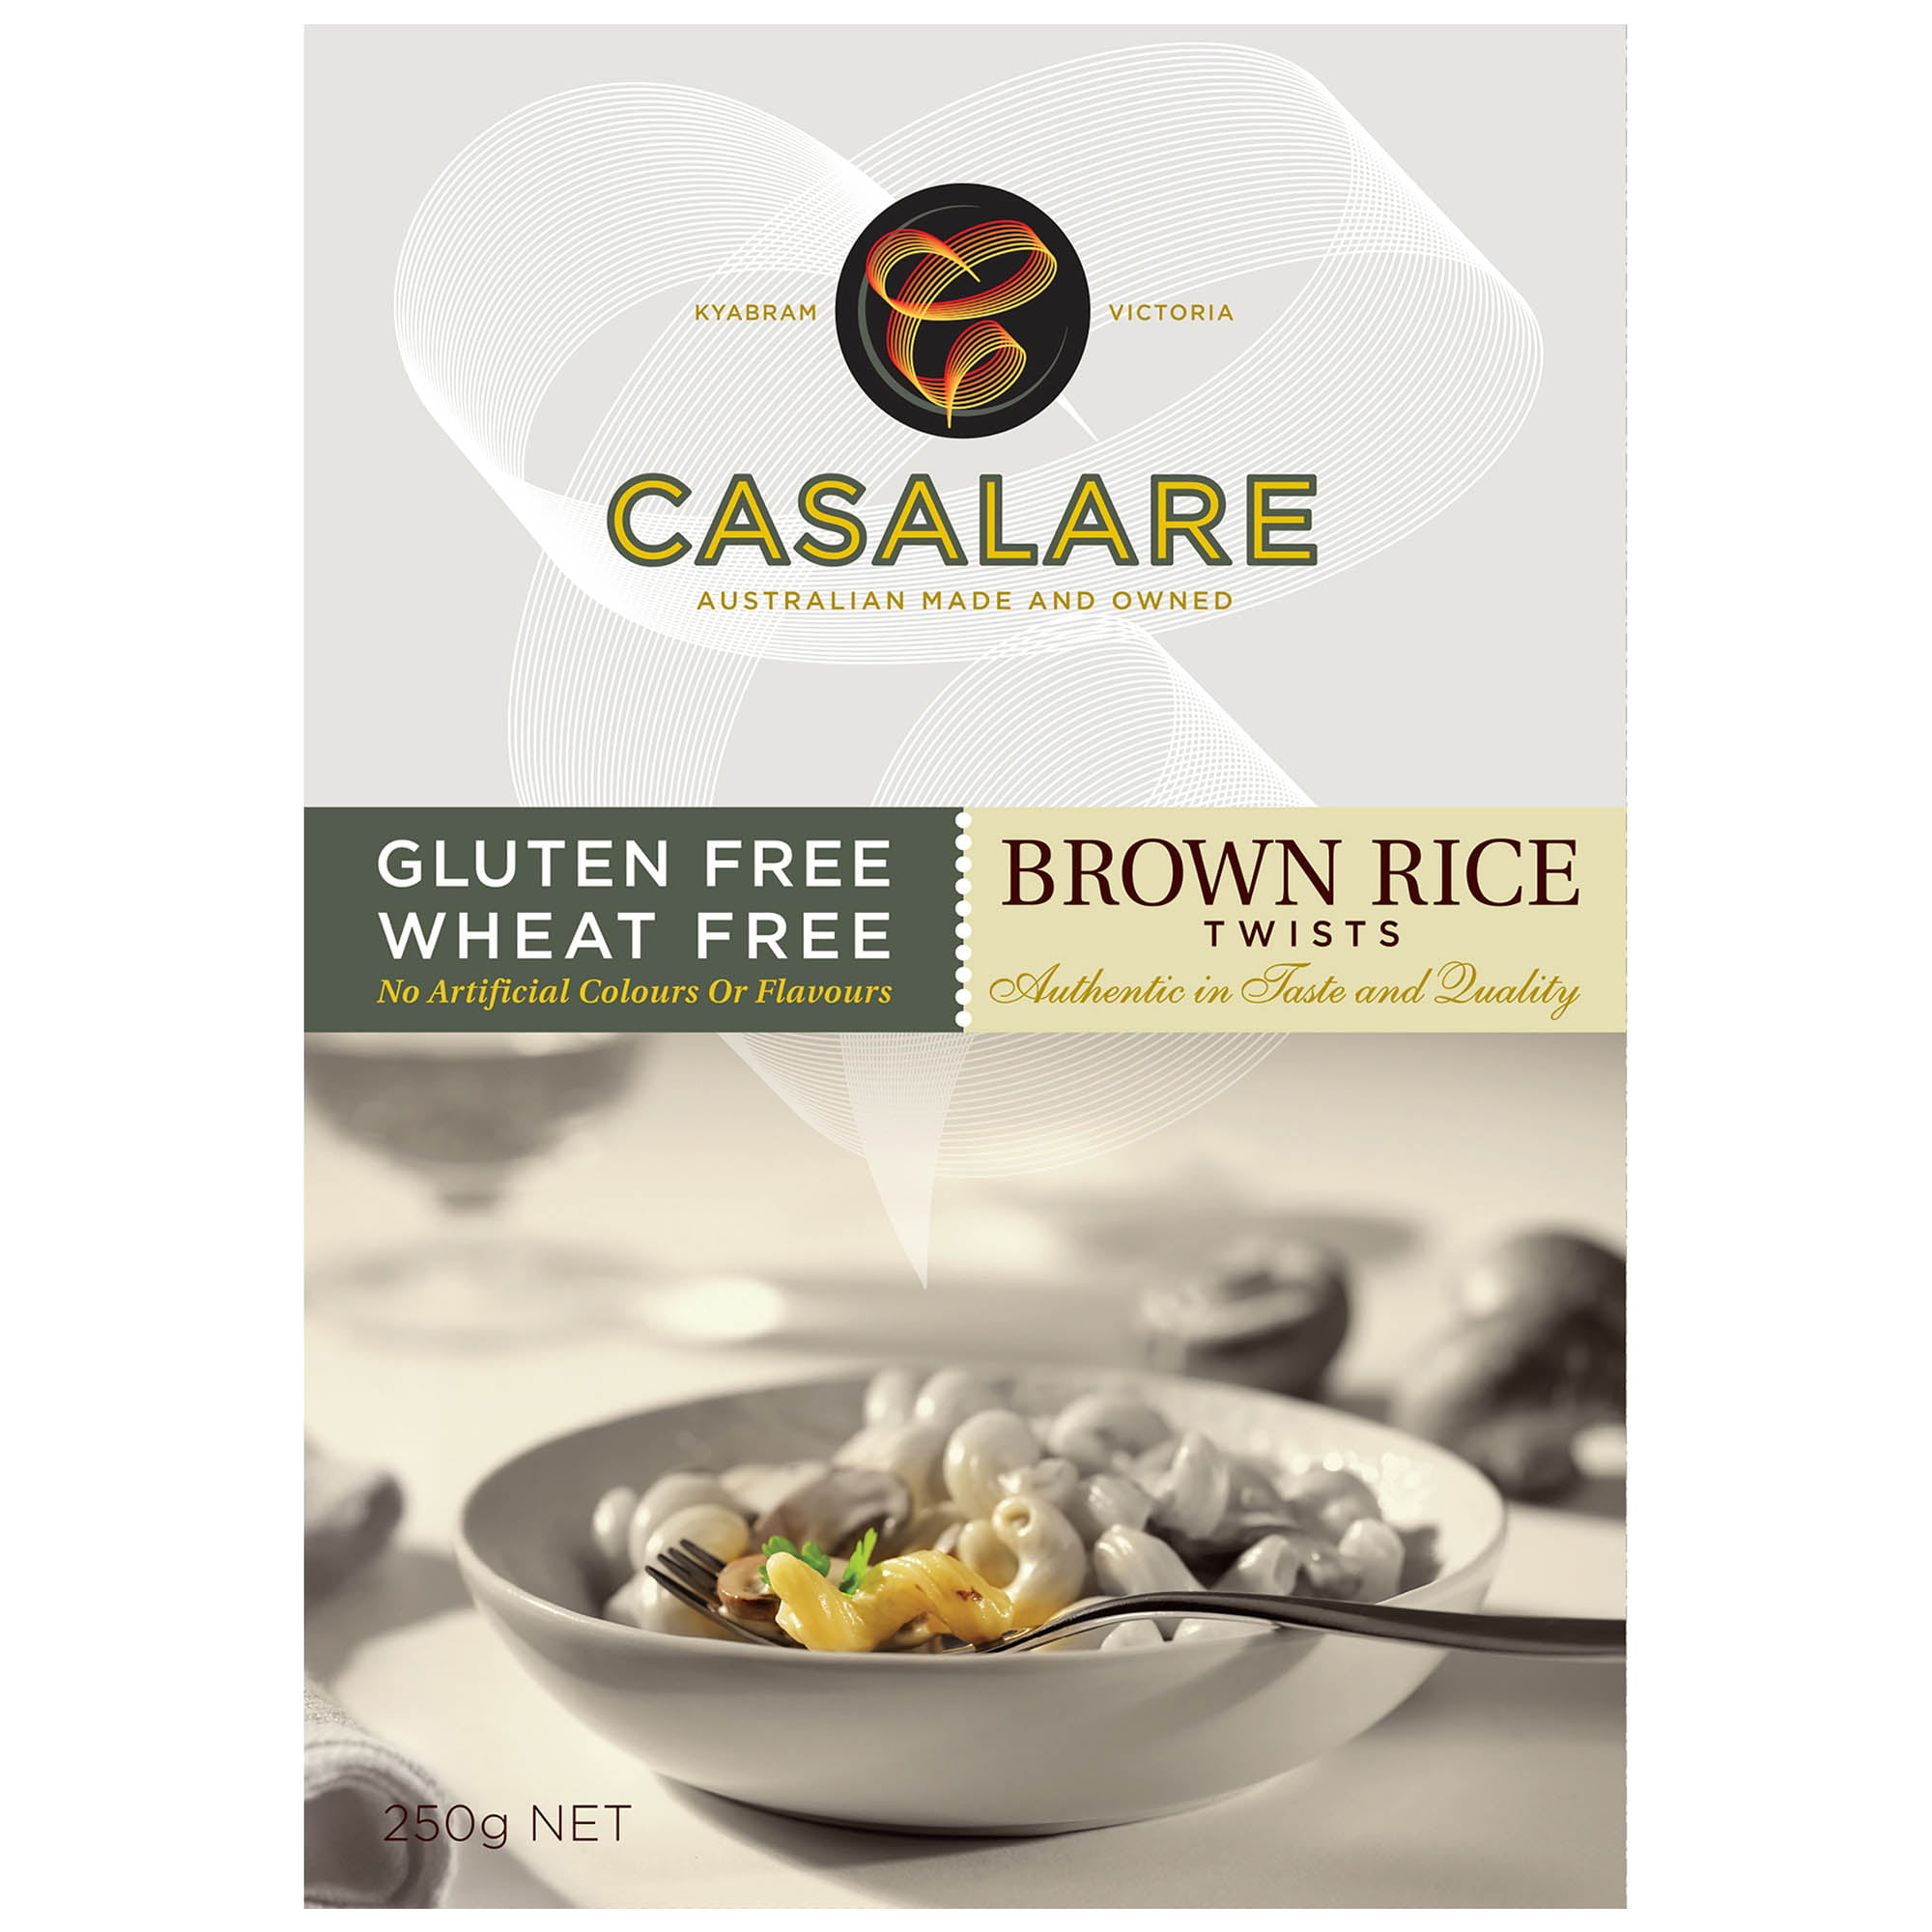 casalare brown rice twists box FA outlined copy